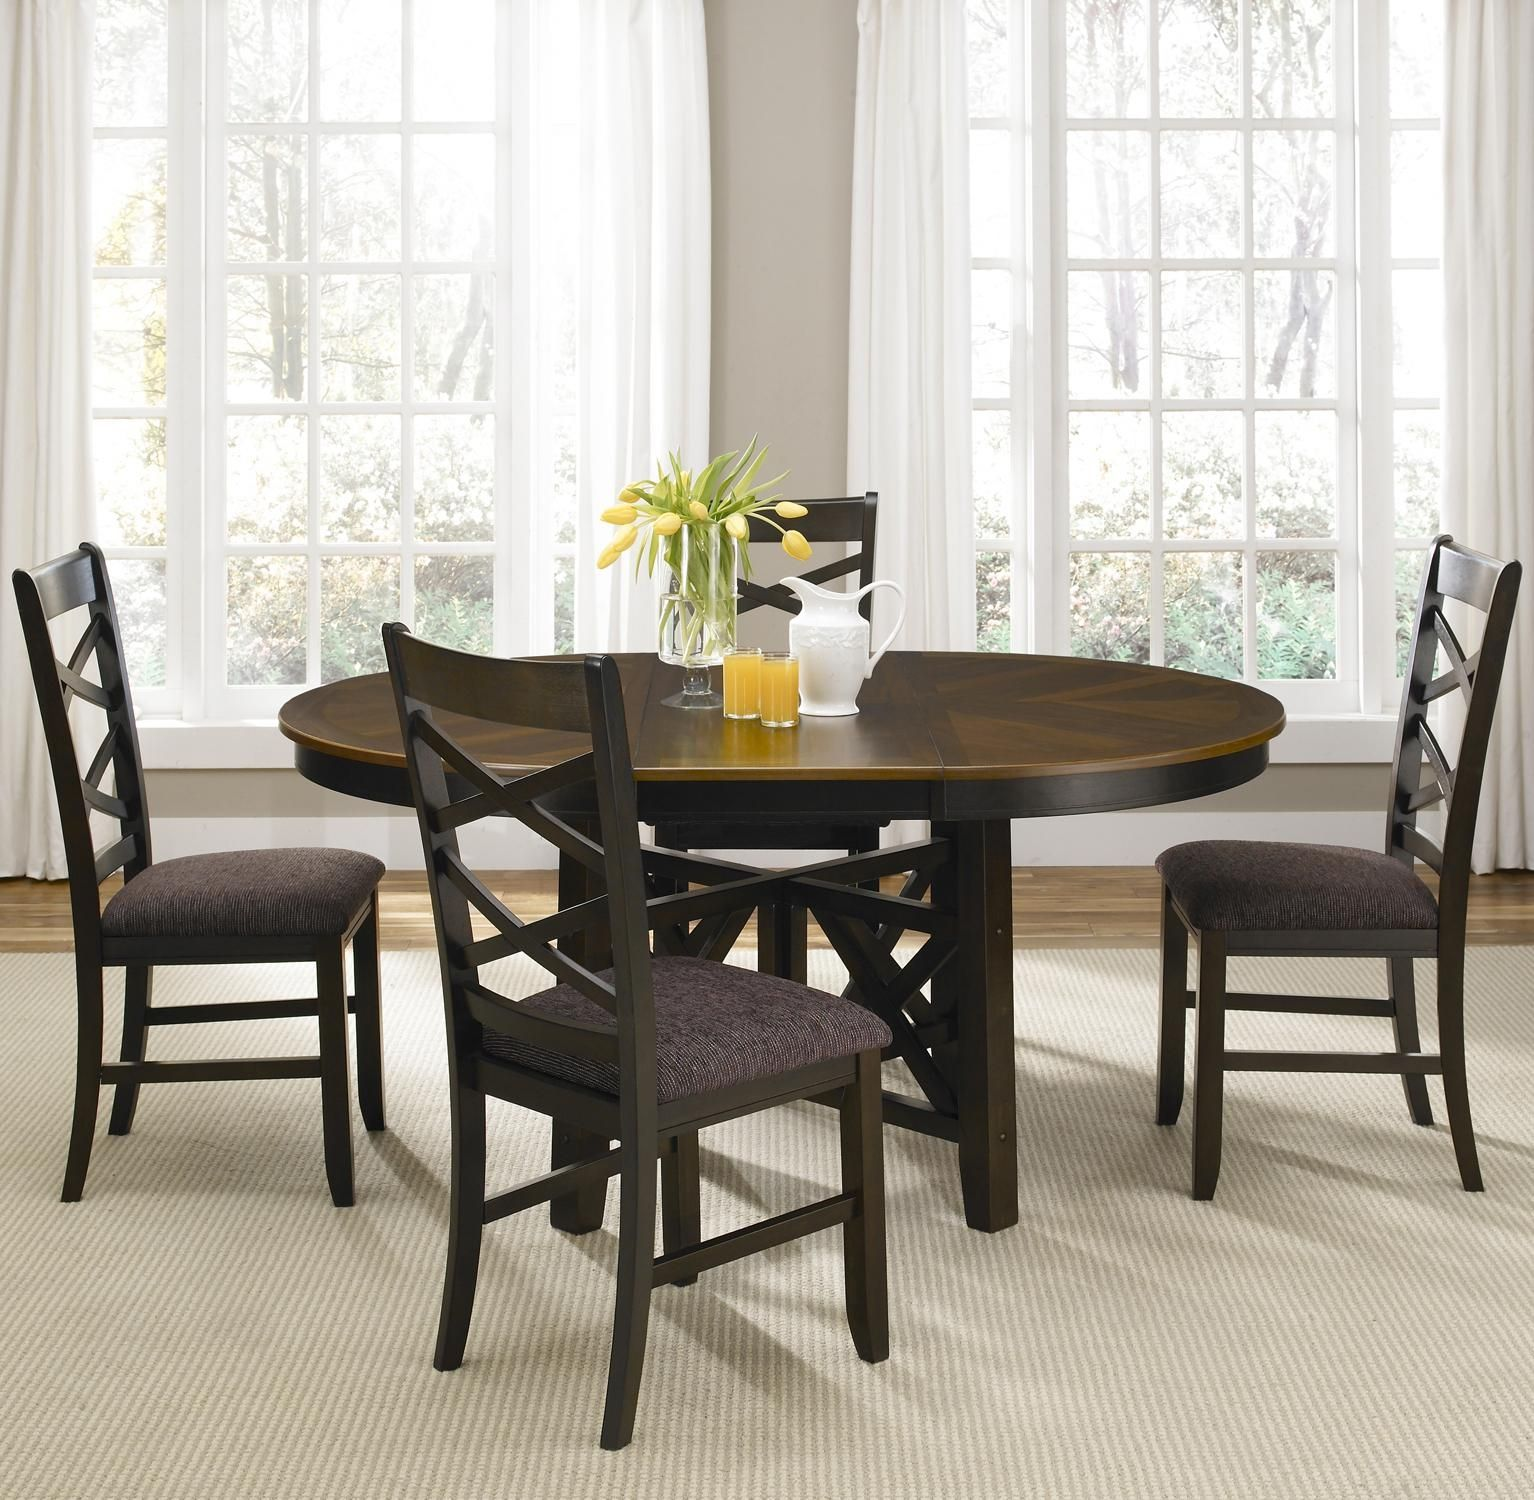 Round Pedestal Dining Table With Butterfly Leaf